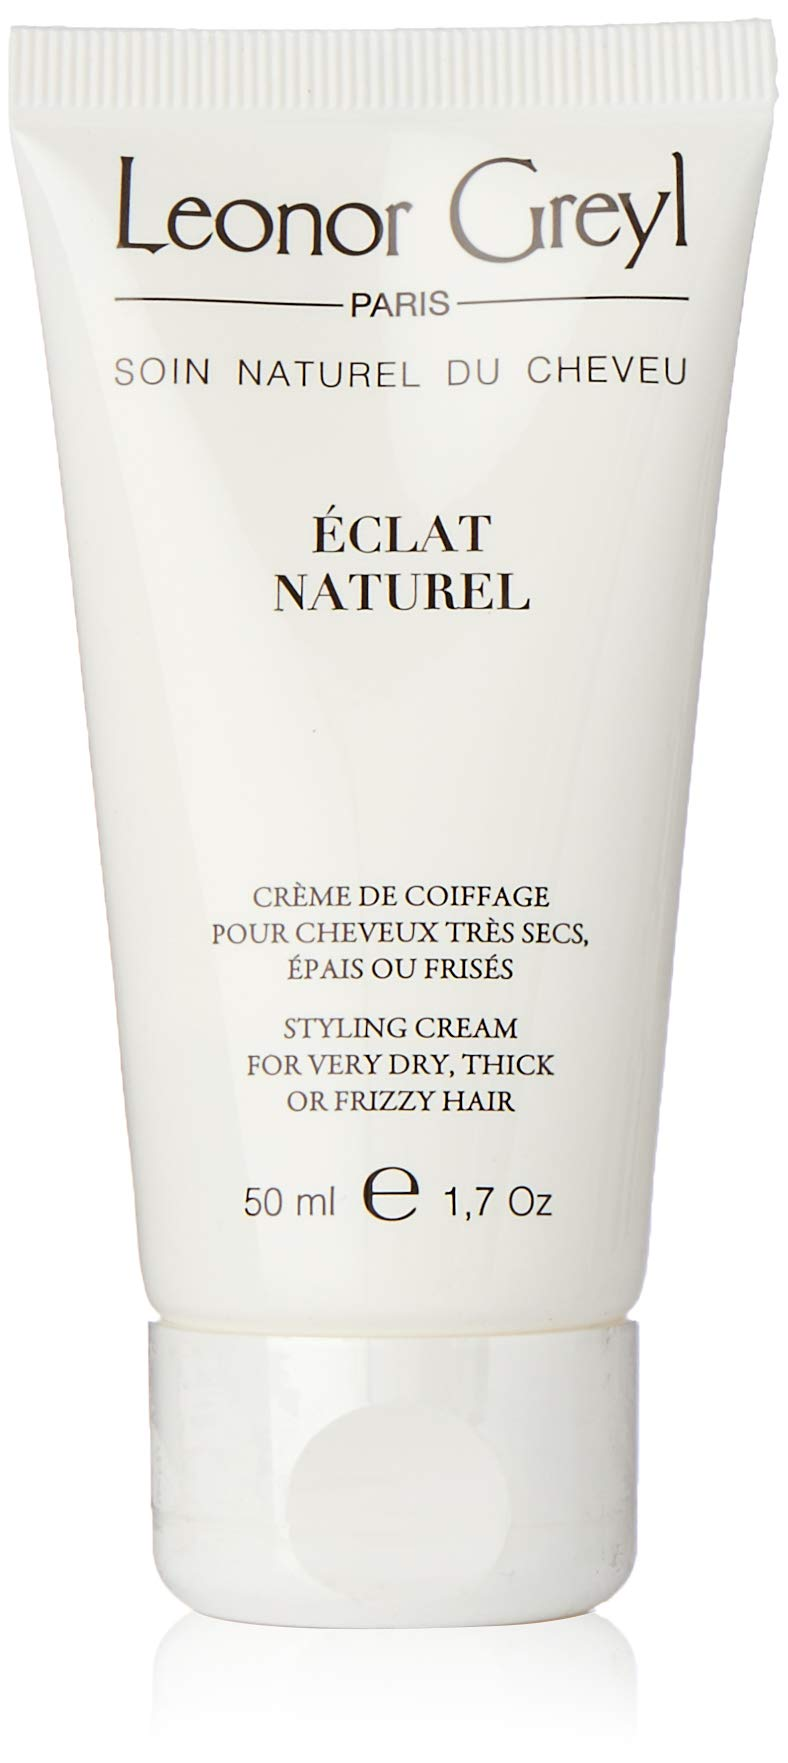 Leonor Greyl Paris Éclat Naturel - Styling Cream for Dry and Frizzy Hair 1.7 oz.